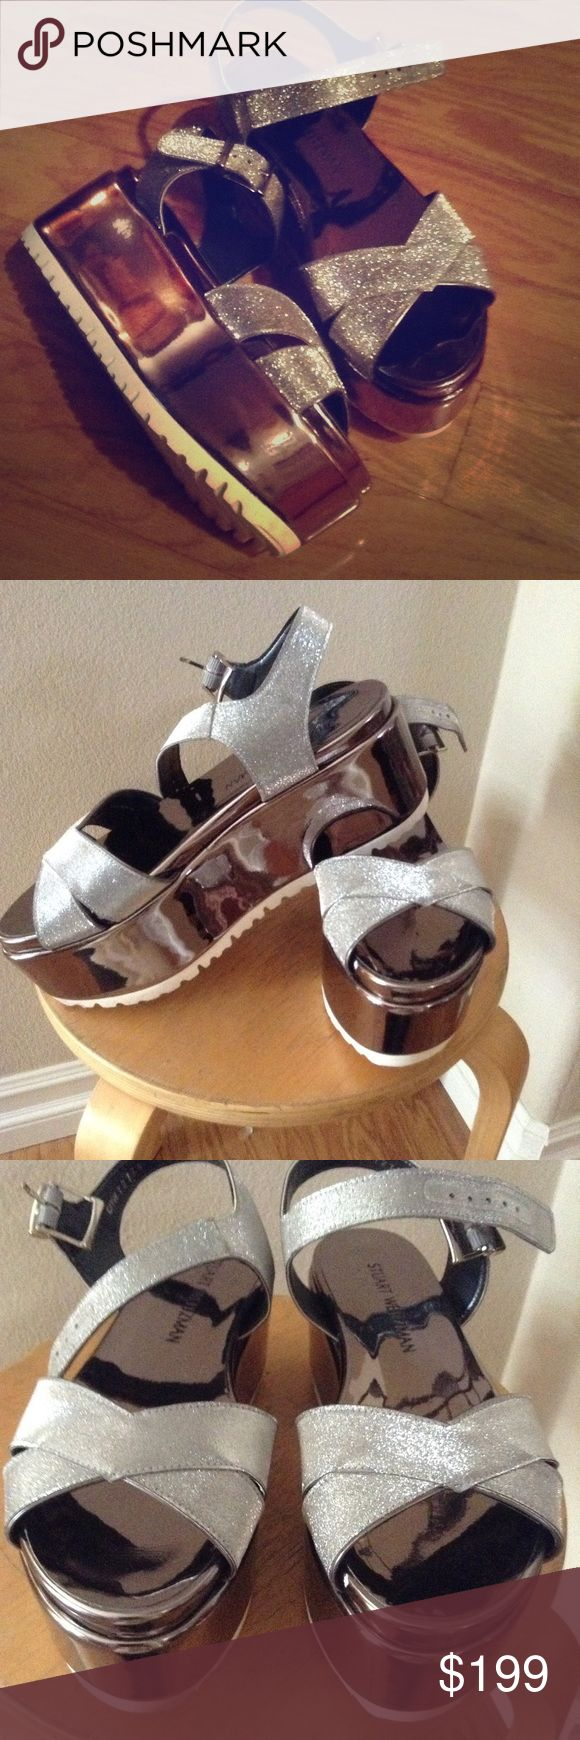 Stuart Weitzman cross patch platform pewter sandal Not for the shy girl glitter wedge metallic slick platforms thick traction white rubber sole Stuart Weitzman Shoes Platforms